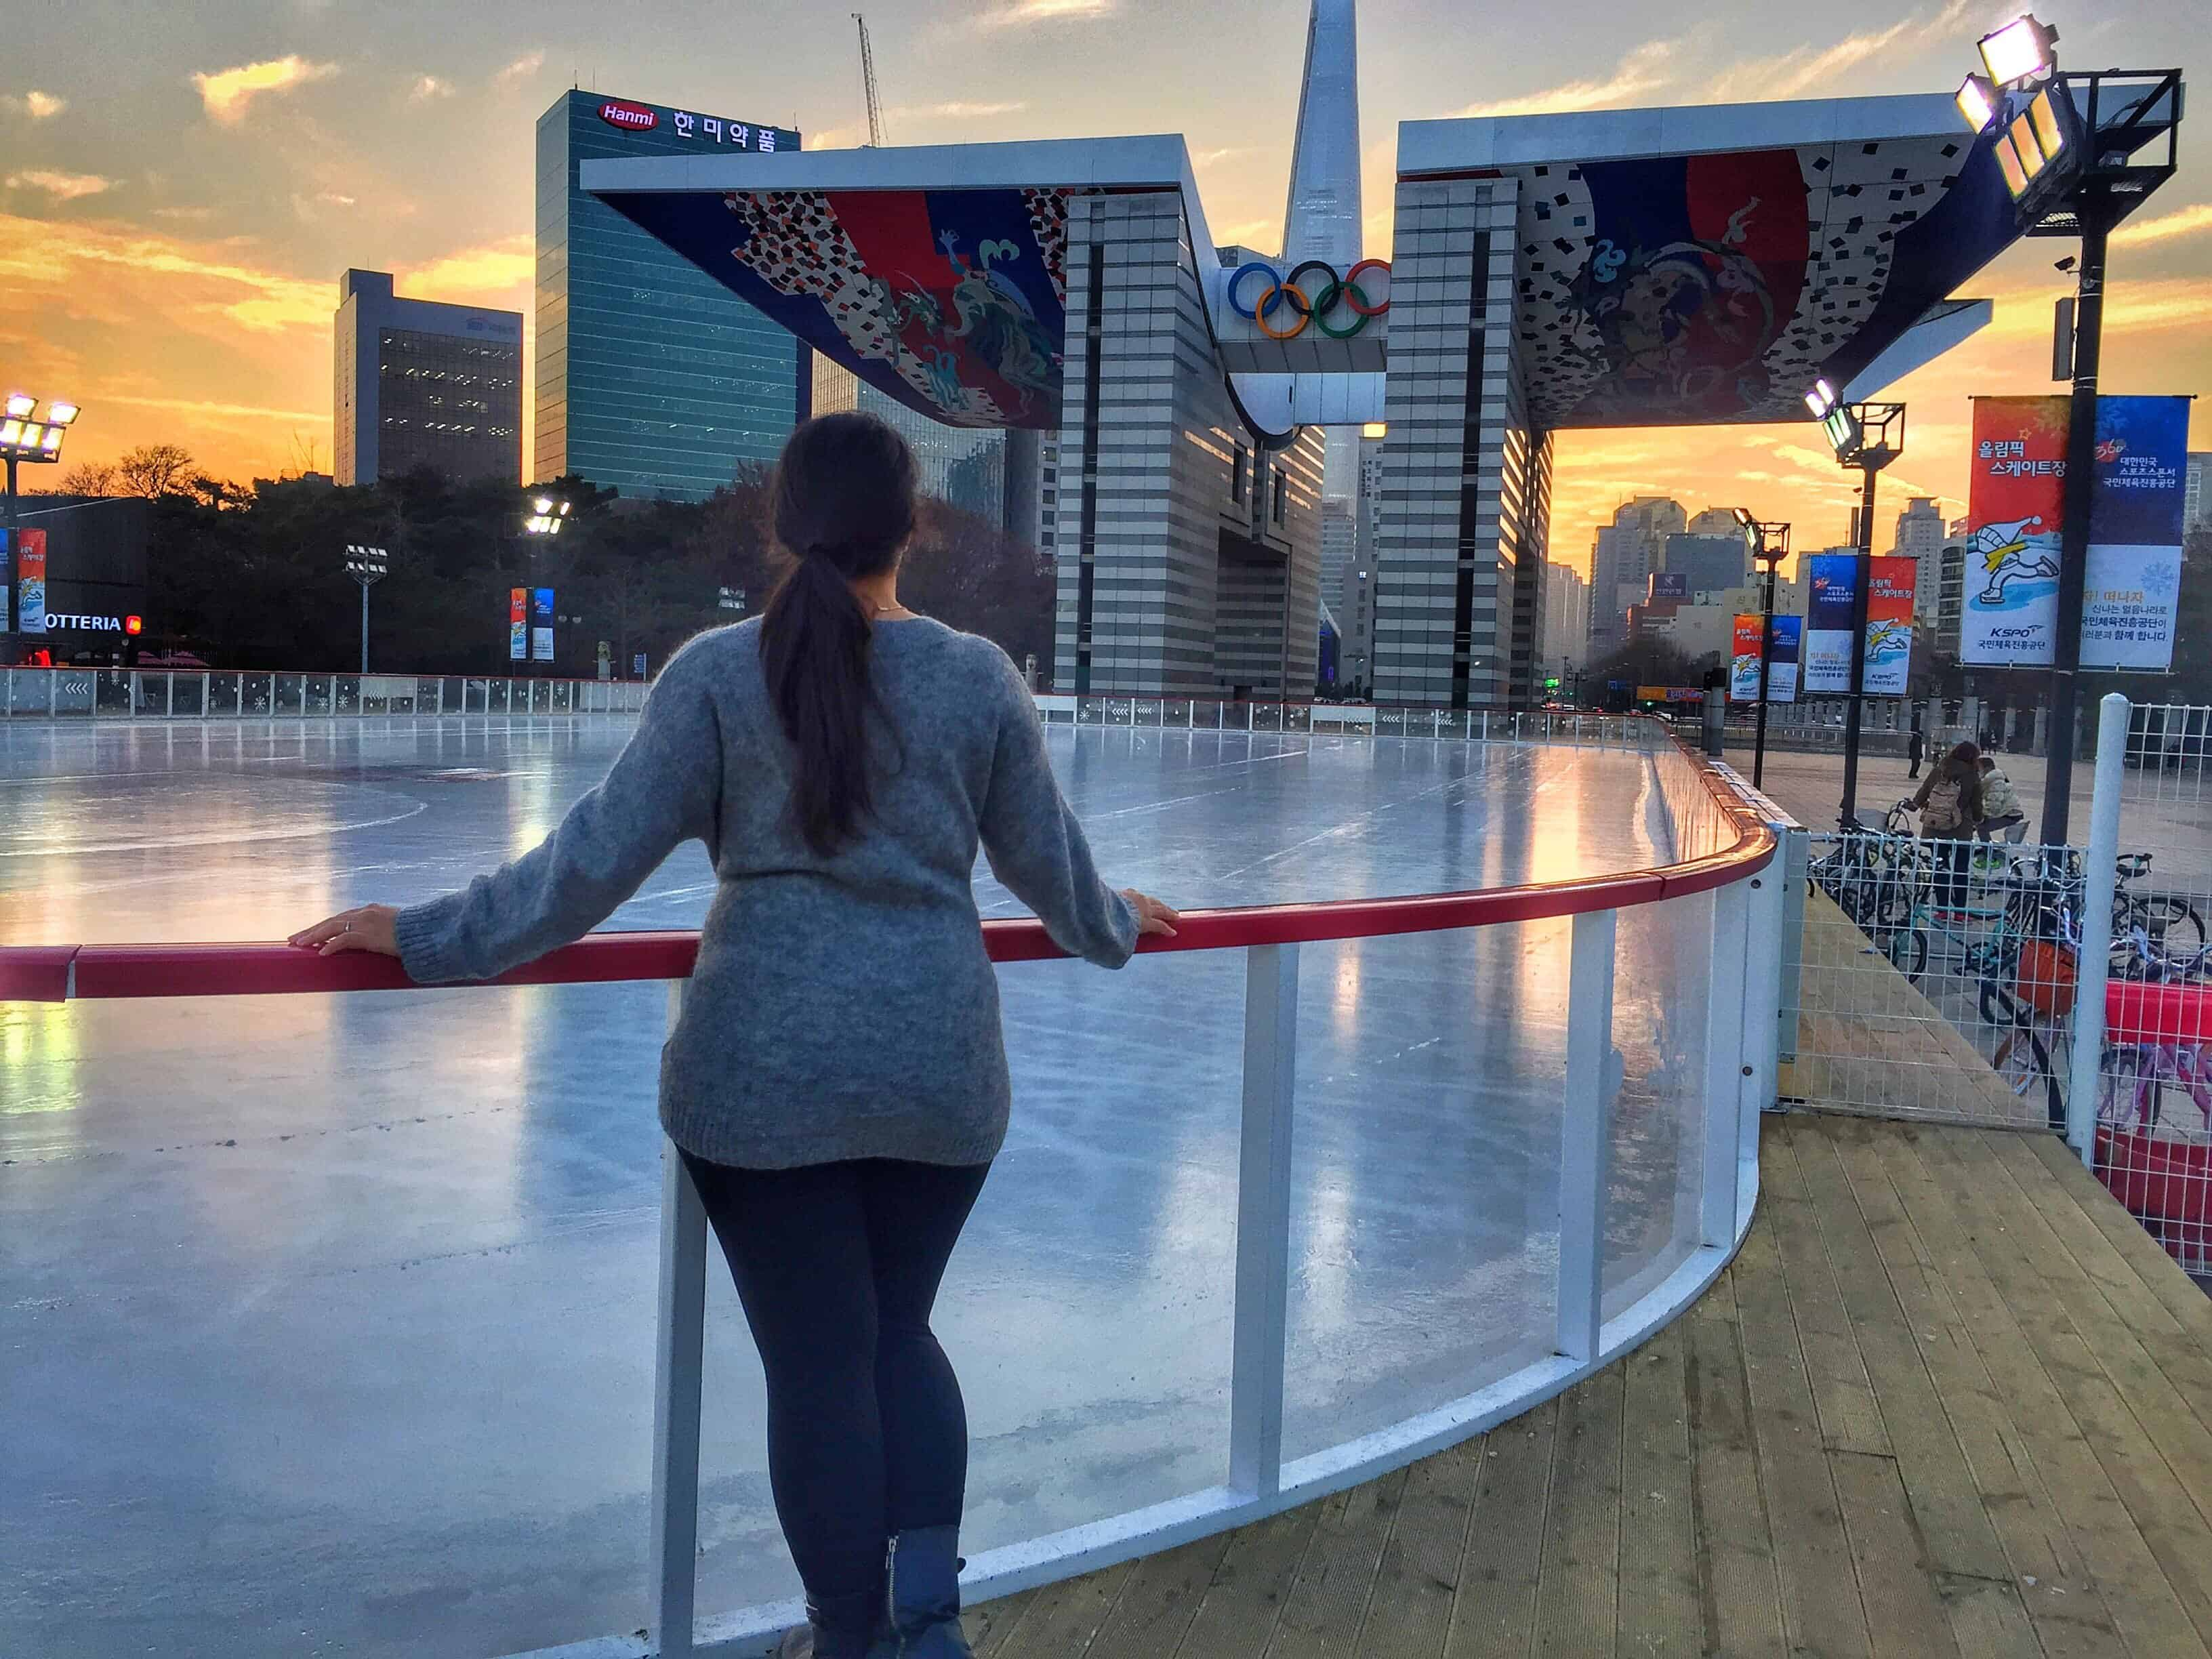 Olympic Park Has An Ice Rink At The Main Entrance And Its Pretty Cheap 3000 Won Yall To Rent Skates Buy Snacks